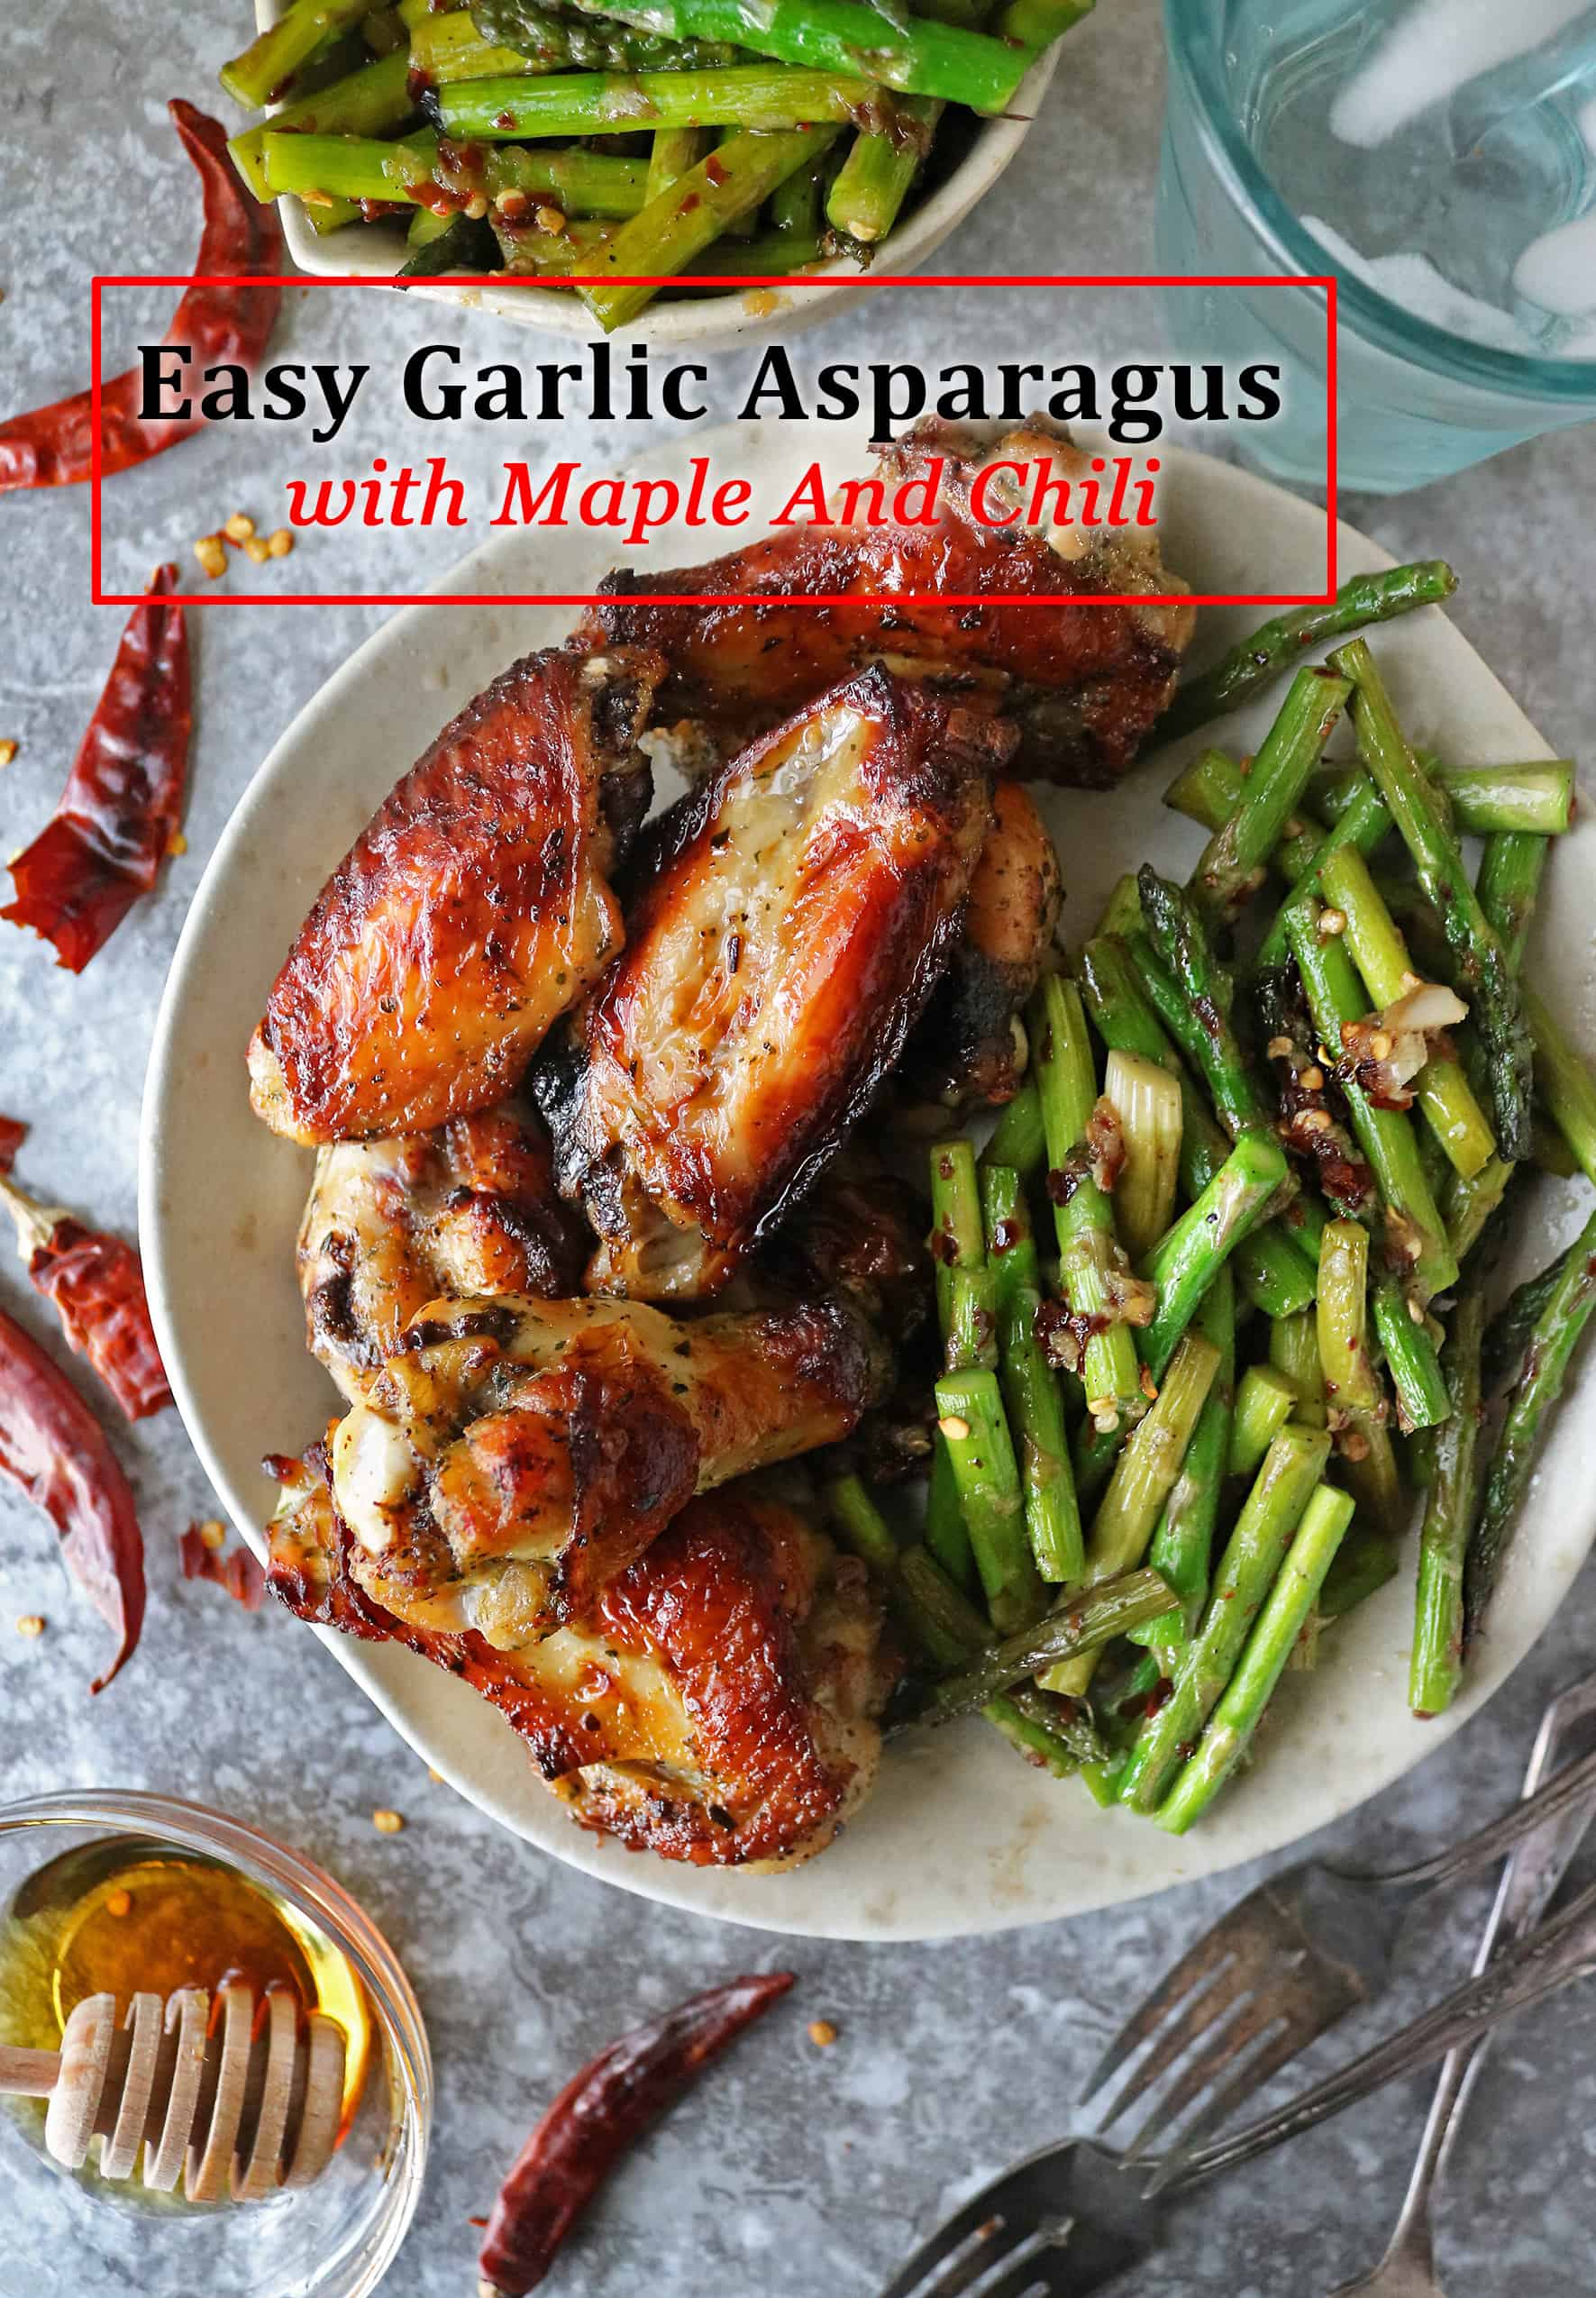 Easy Garlic Asparagus with Maple And Chili #FamilyFarming #ThankAFarmer #FamilyFarmers @PerdueFarms